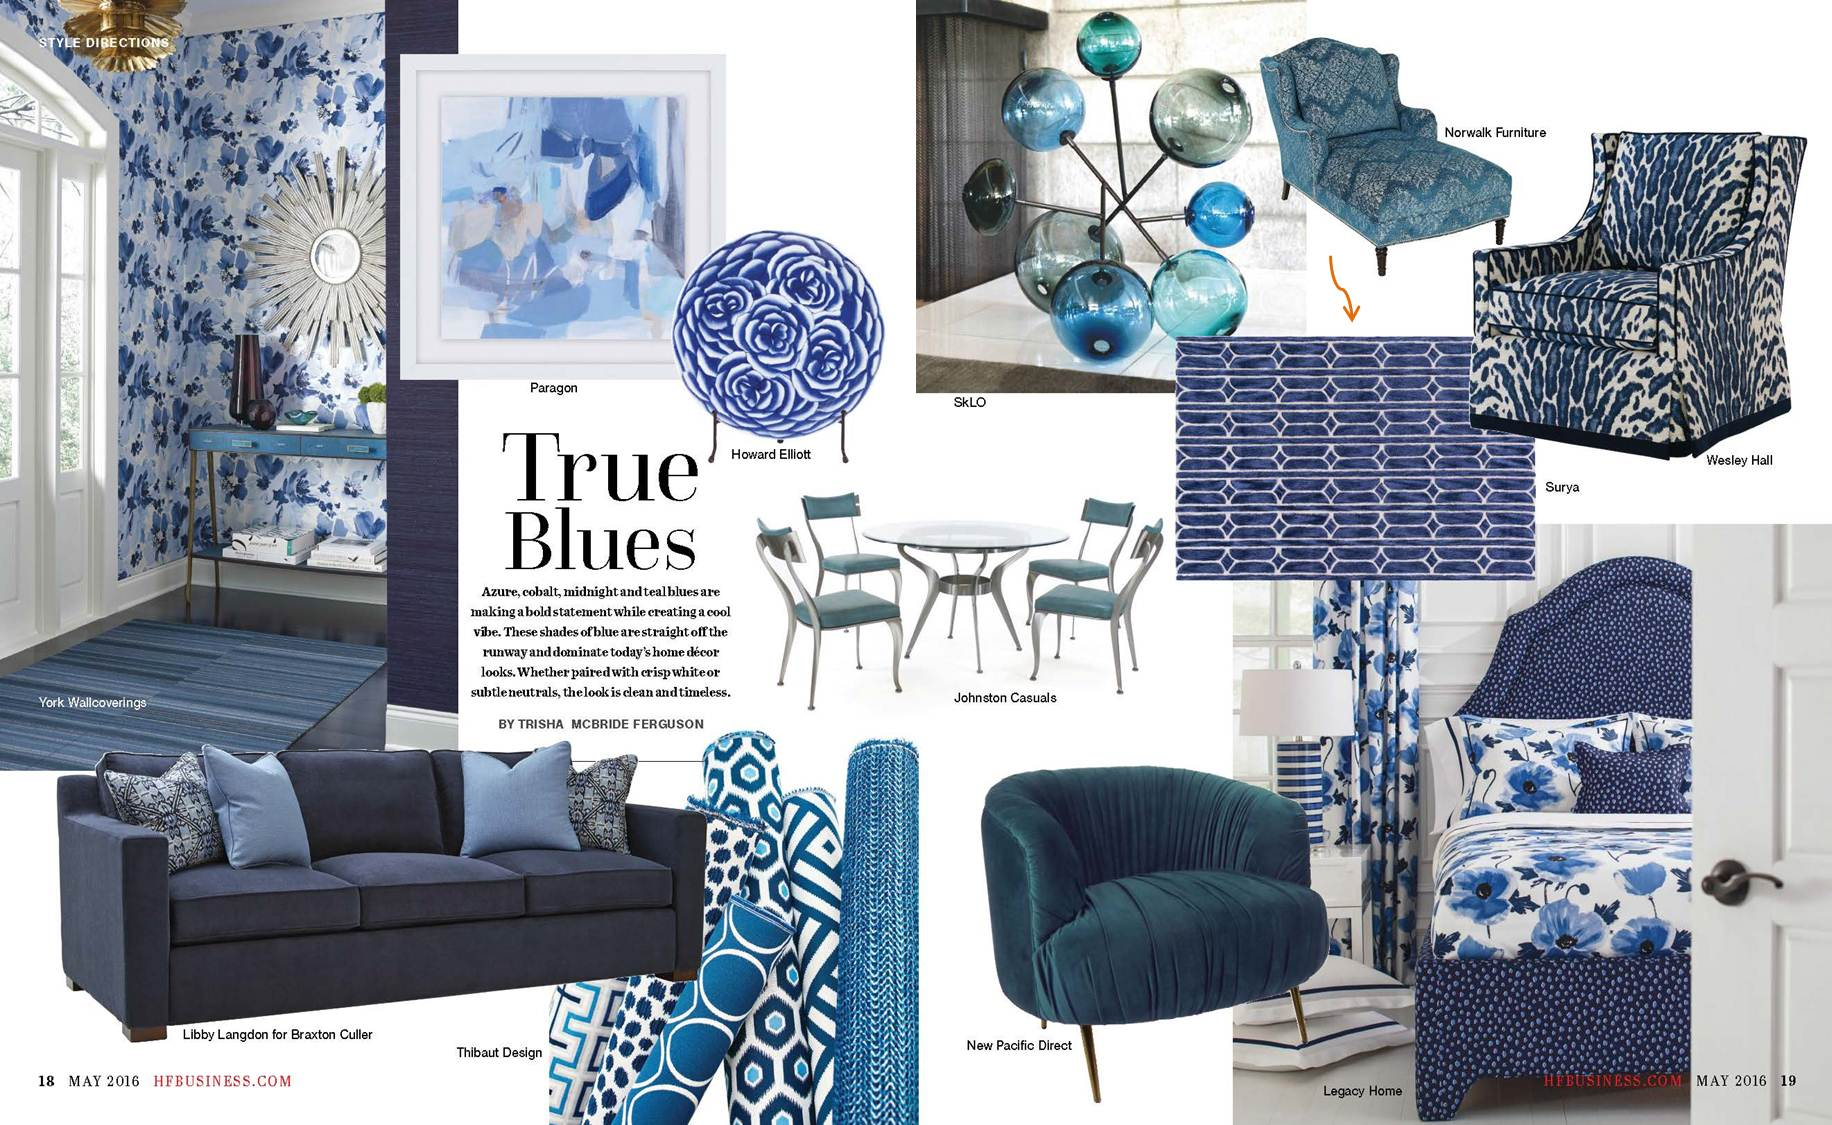 Gentil Suryau0027s Richly Textured Alexandra Rug With A Modern Geometric Motif In Deep  Indigo Hues Is Spotlighted In This Color Story On Vibrant Blue Accessories  That ...